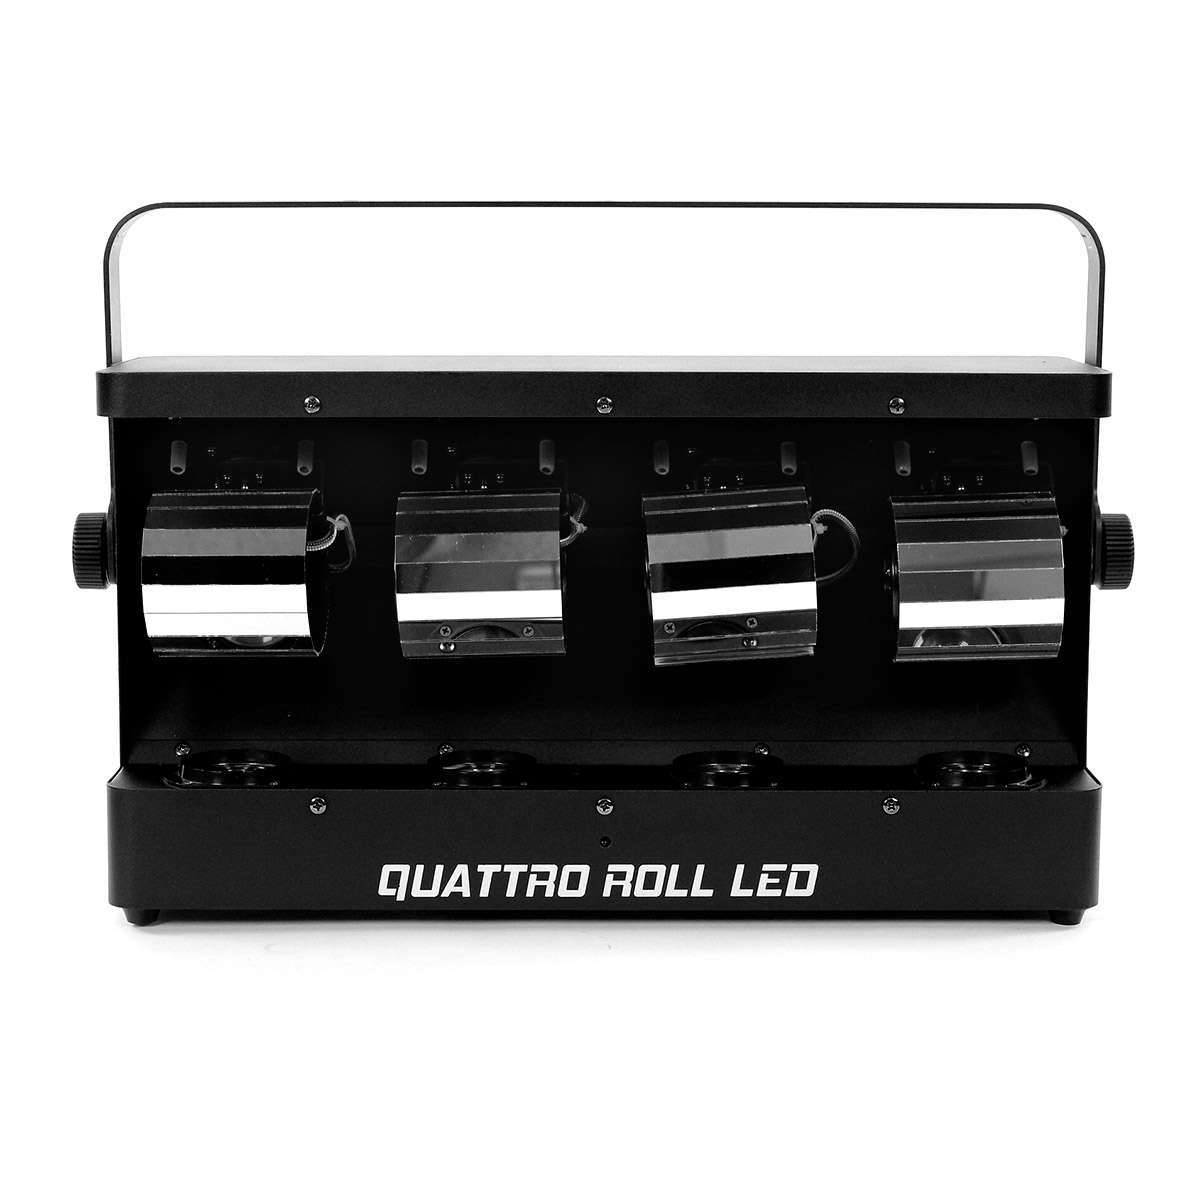 Quattro Roll LED